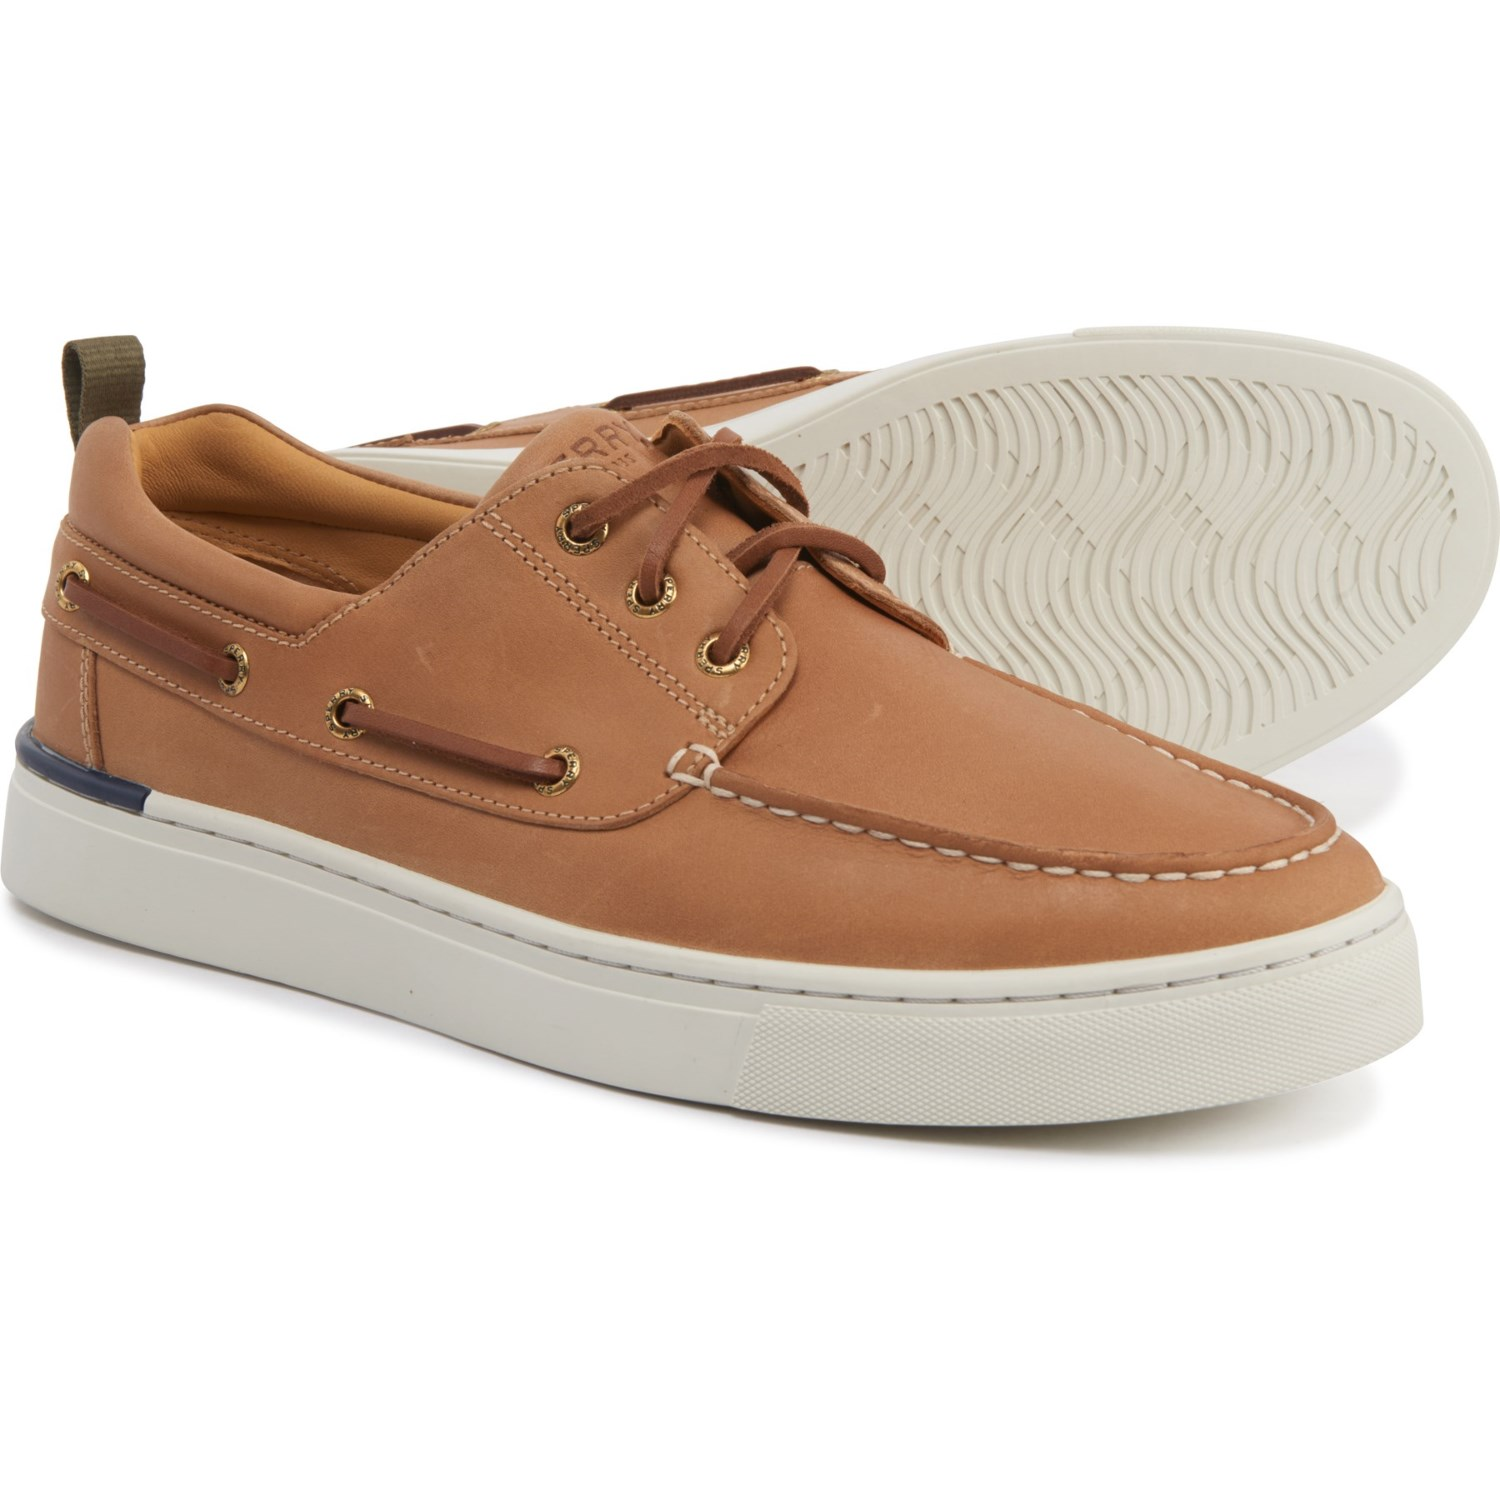 NEW SPERRY GOLD 2 EYE A//O DARK TAN MENS BOAT SHOE GOLD CUP 8 8.5 FREE SHIP